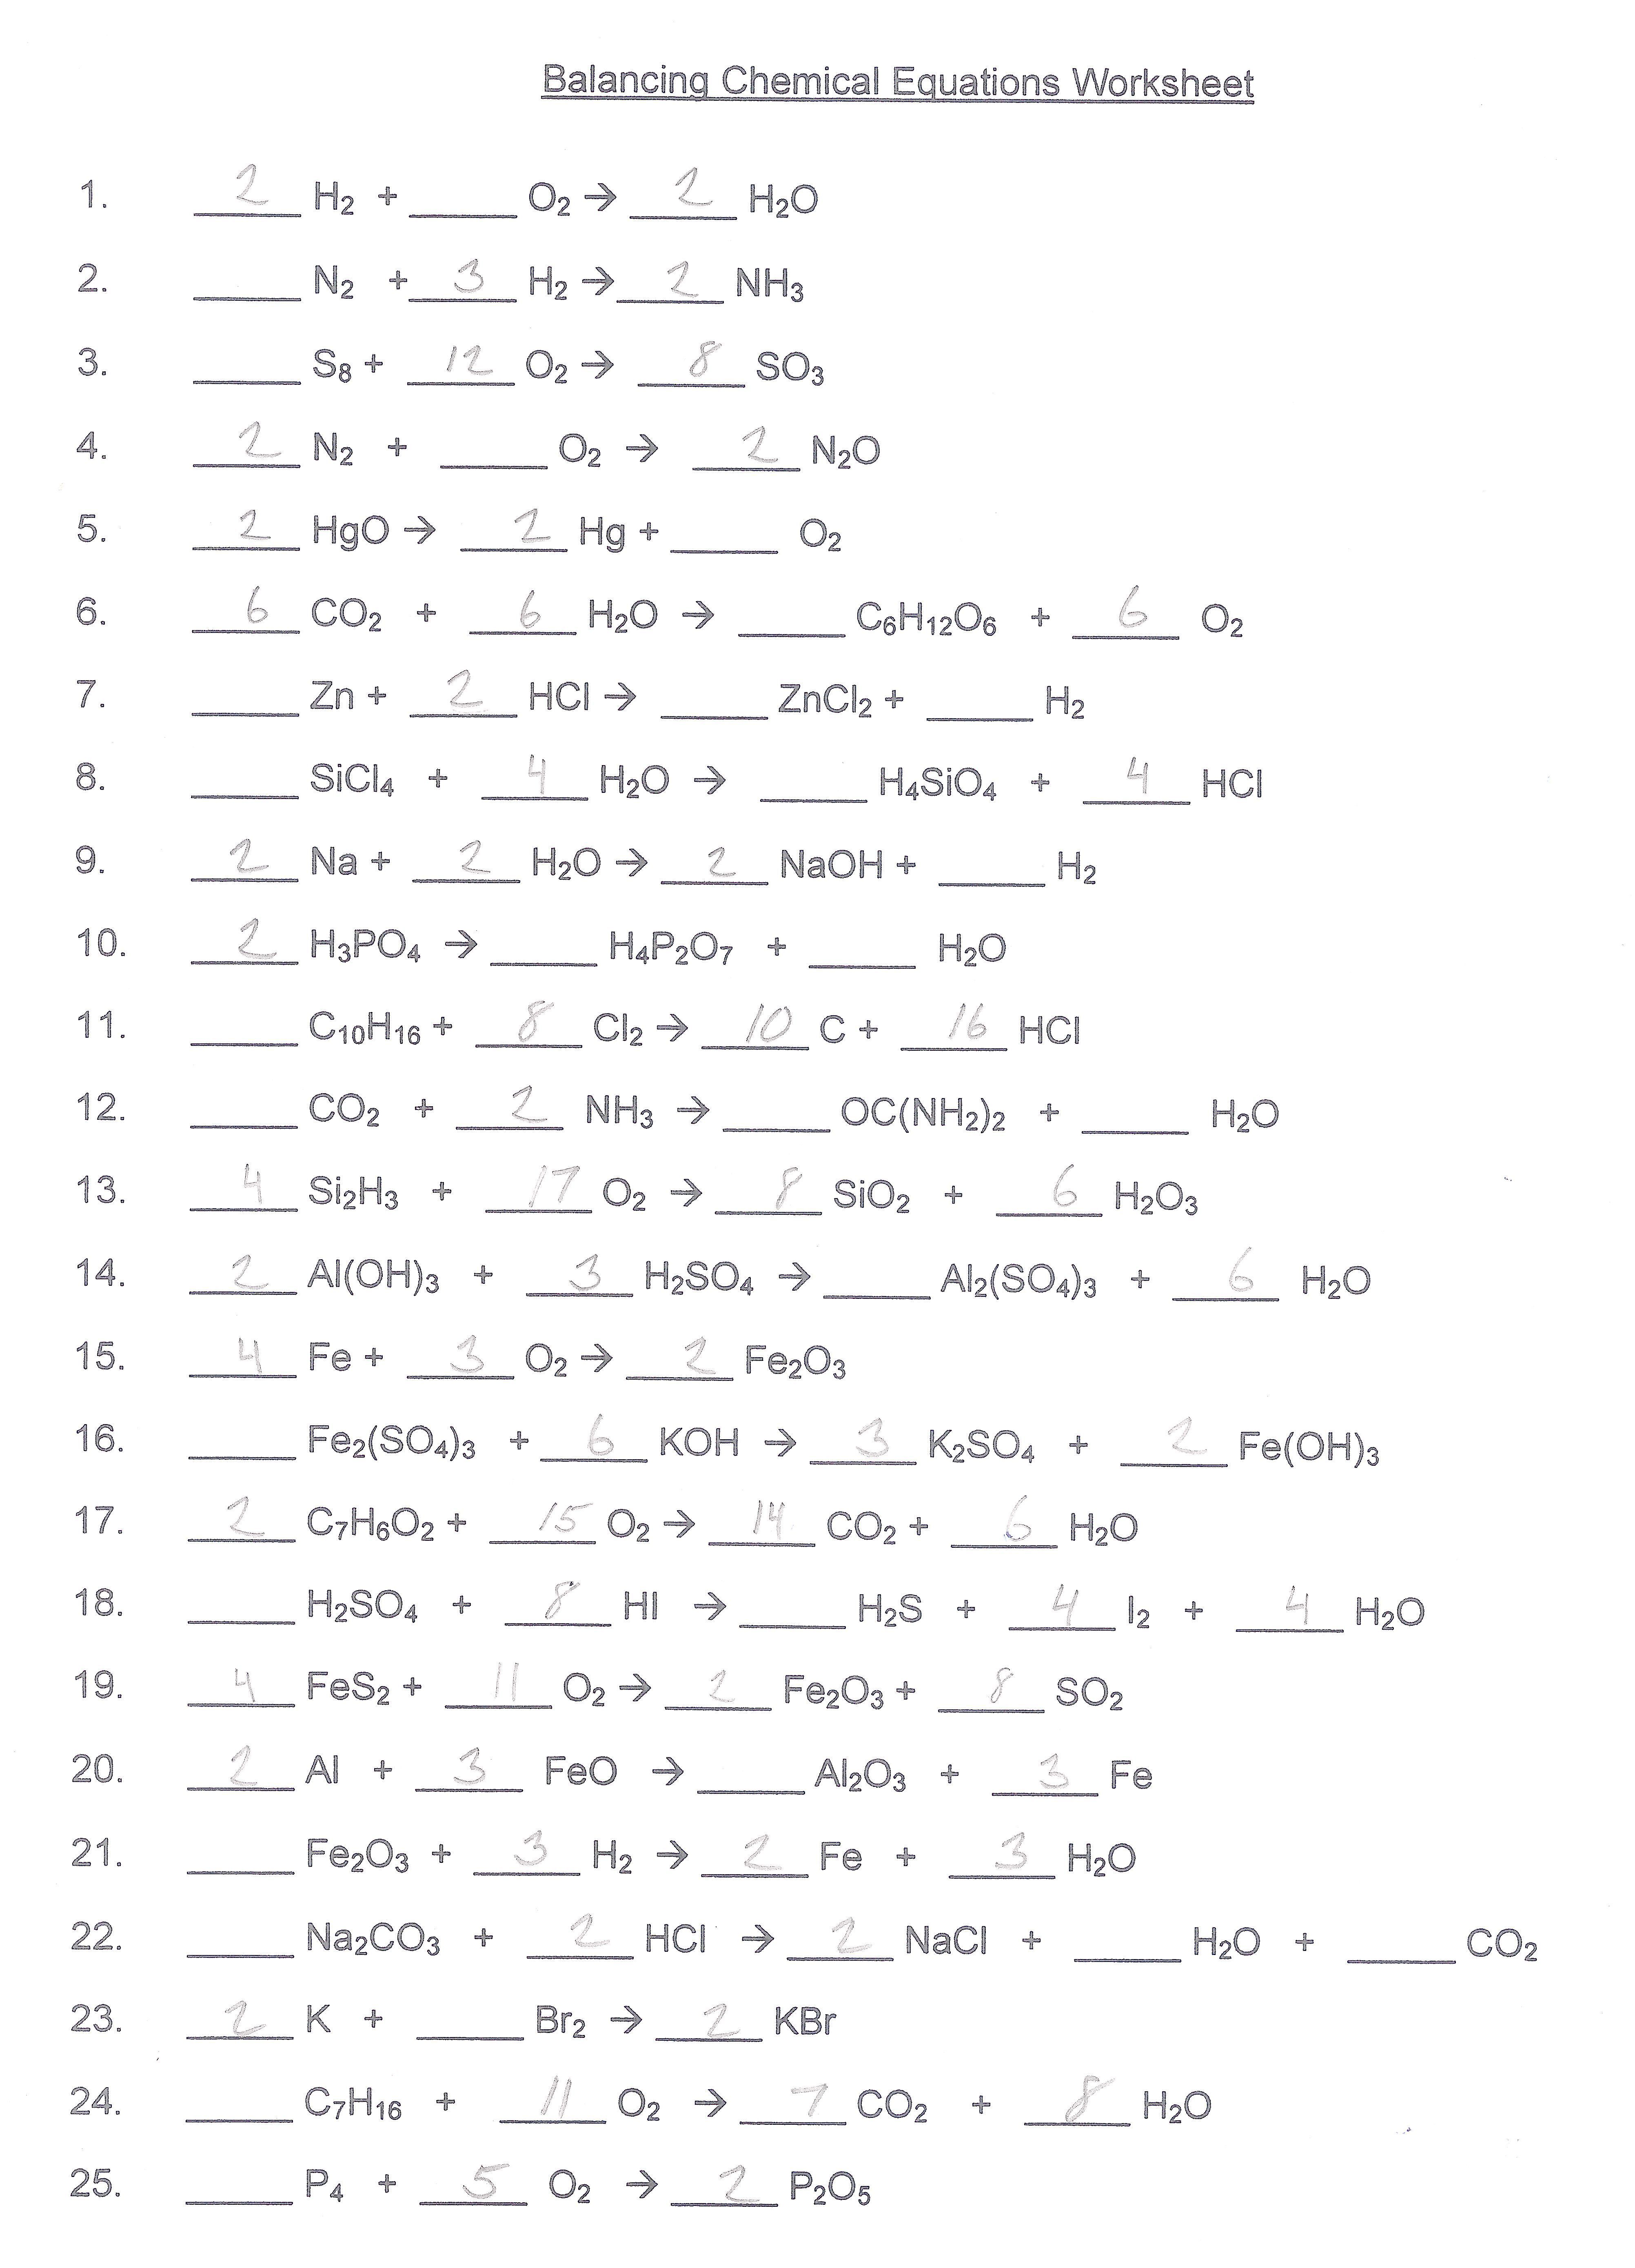 Balancing equations worksheet 1